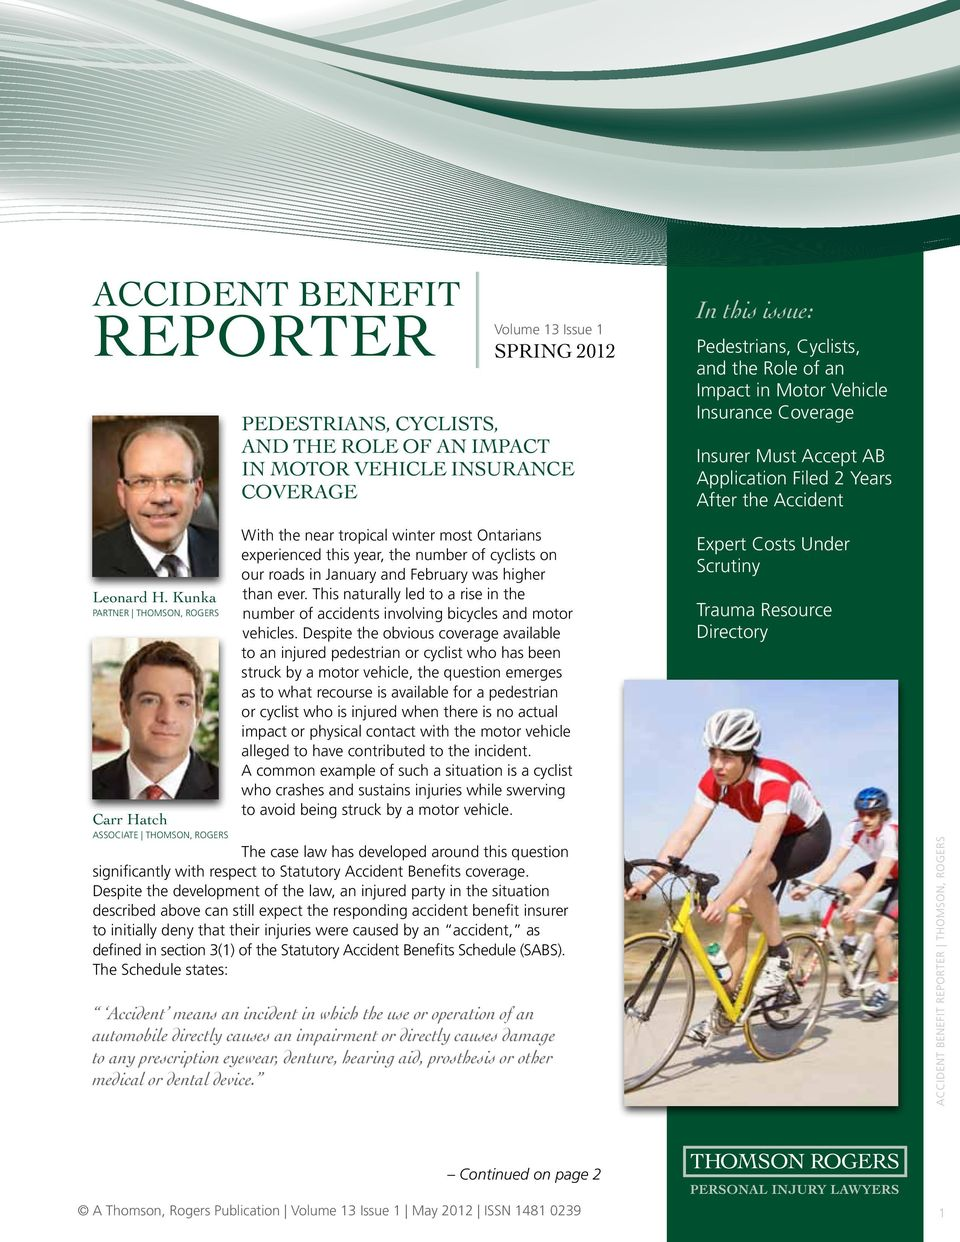 Kunka Partner Thomson, Rogers Carr Hatch Associate Thomson, Rogers With the near tropical winter most Ontarians experienced this year, the number of cyclists on our roads in January and February was